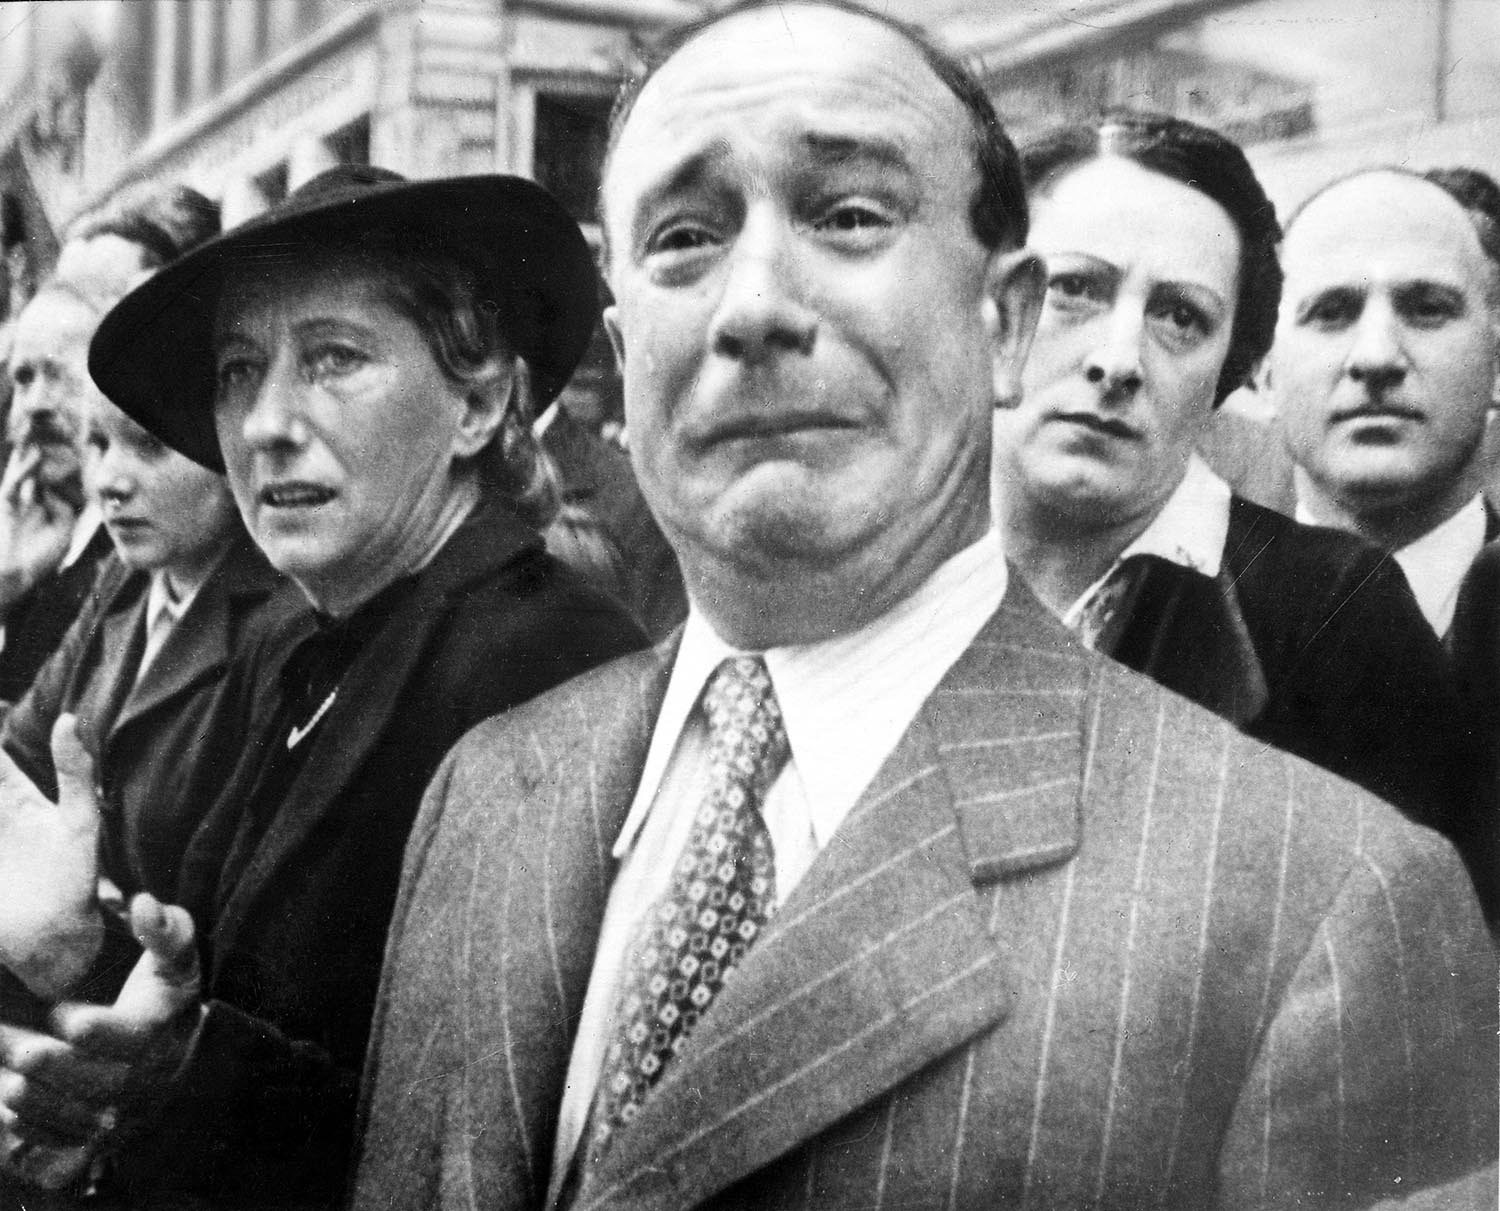 the-weeping-frenchman-1940.jpg